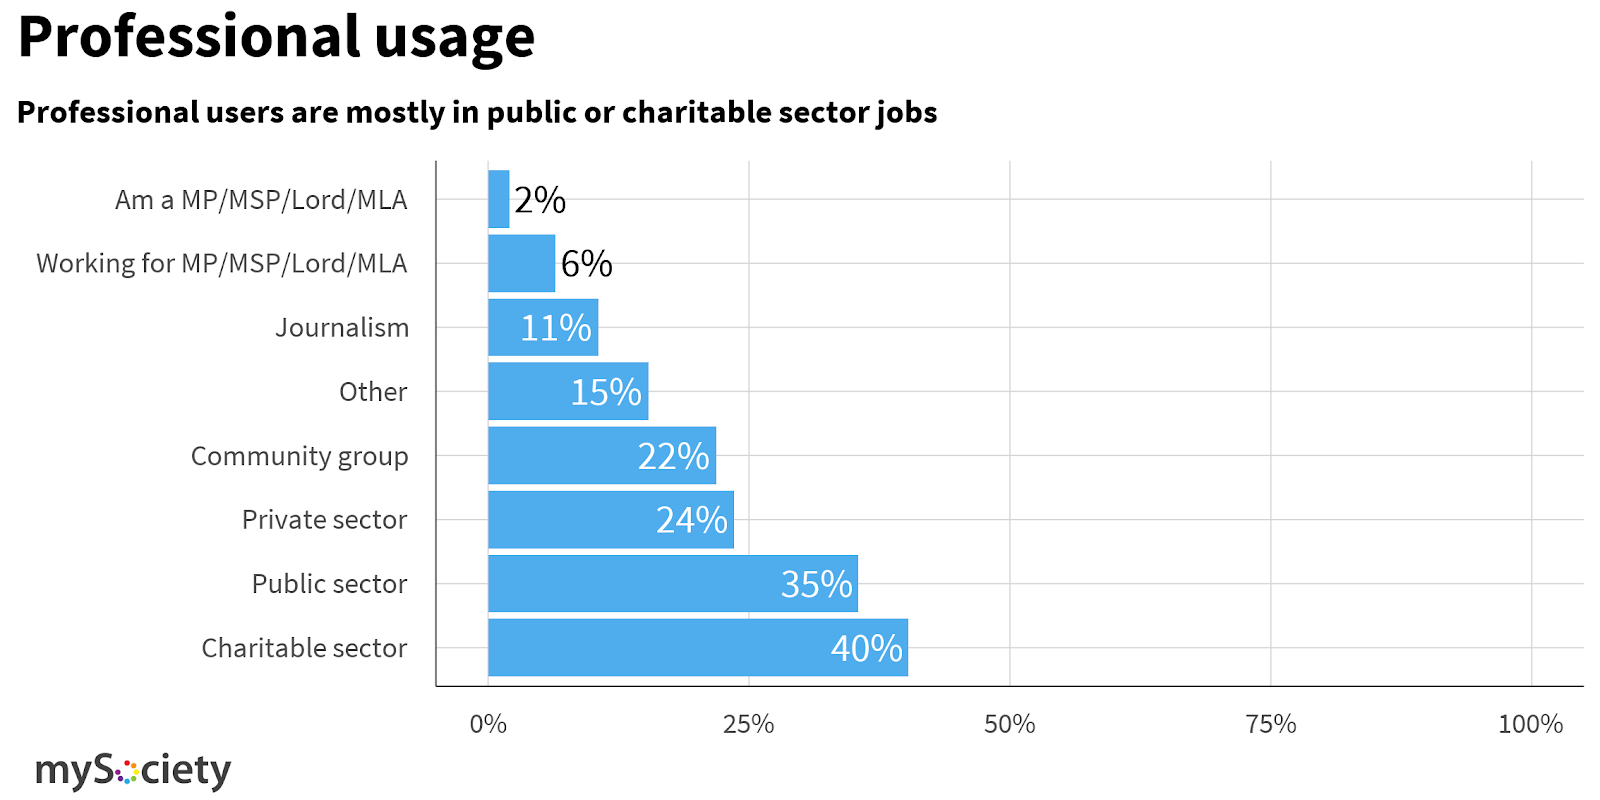 Professional usage is mostly by the charitable and public sector